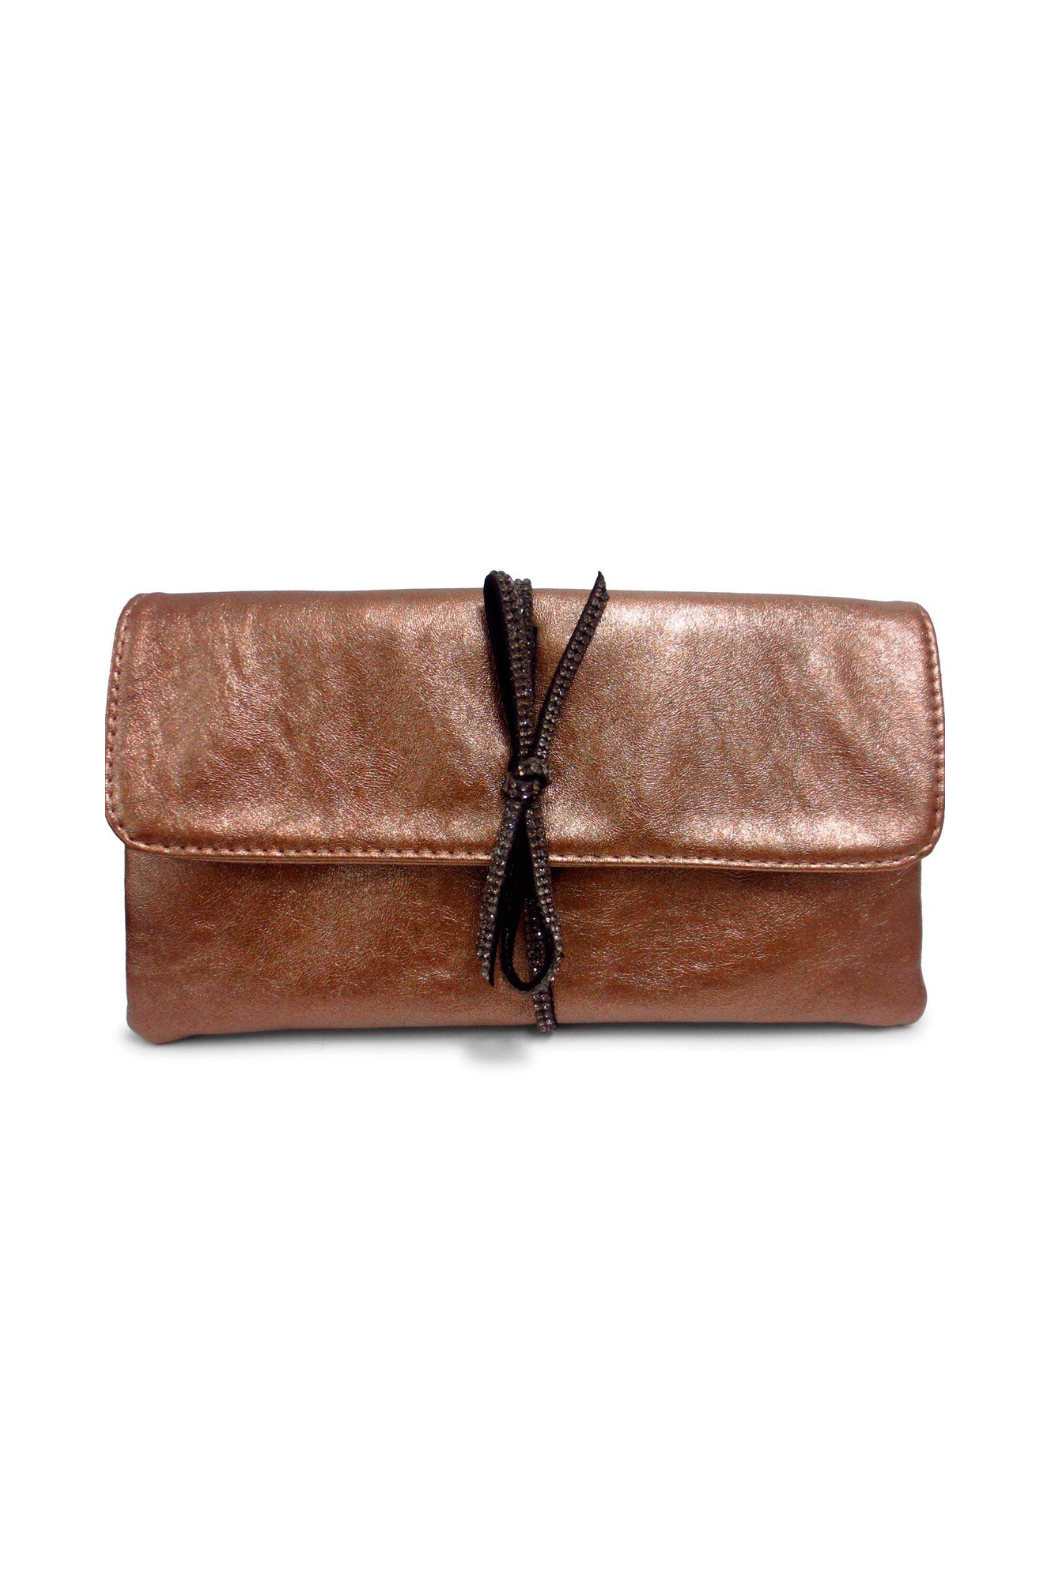 Sondra Roberts Bow Detail Clutch - Front Cropped Image